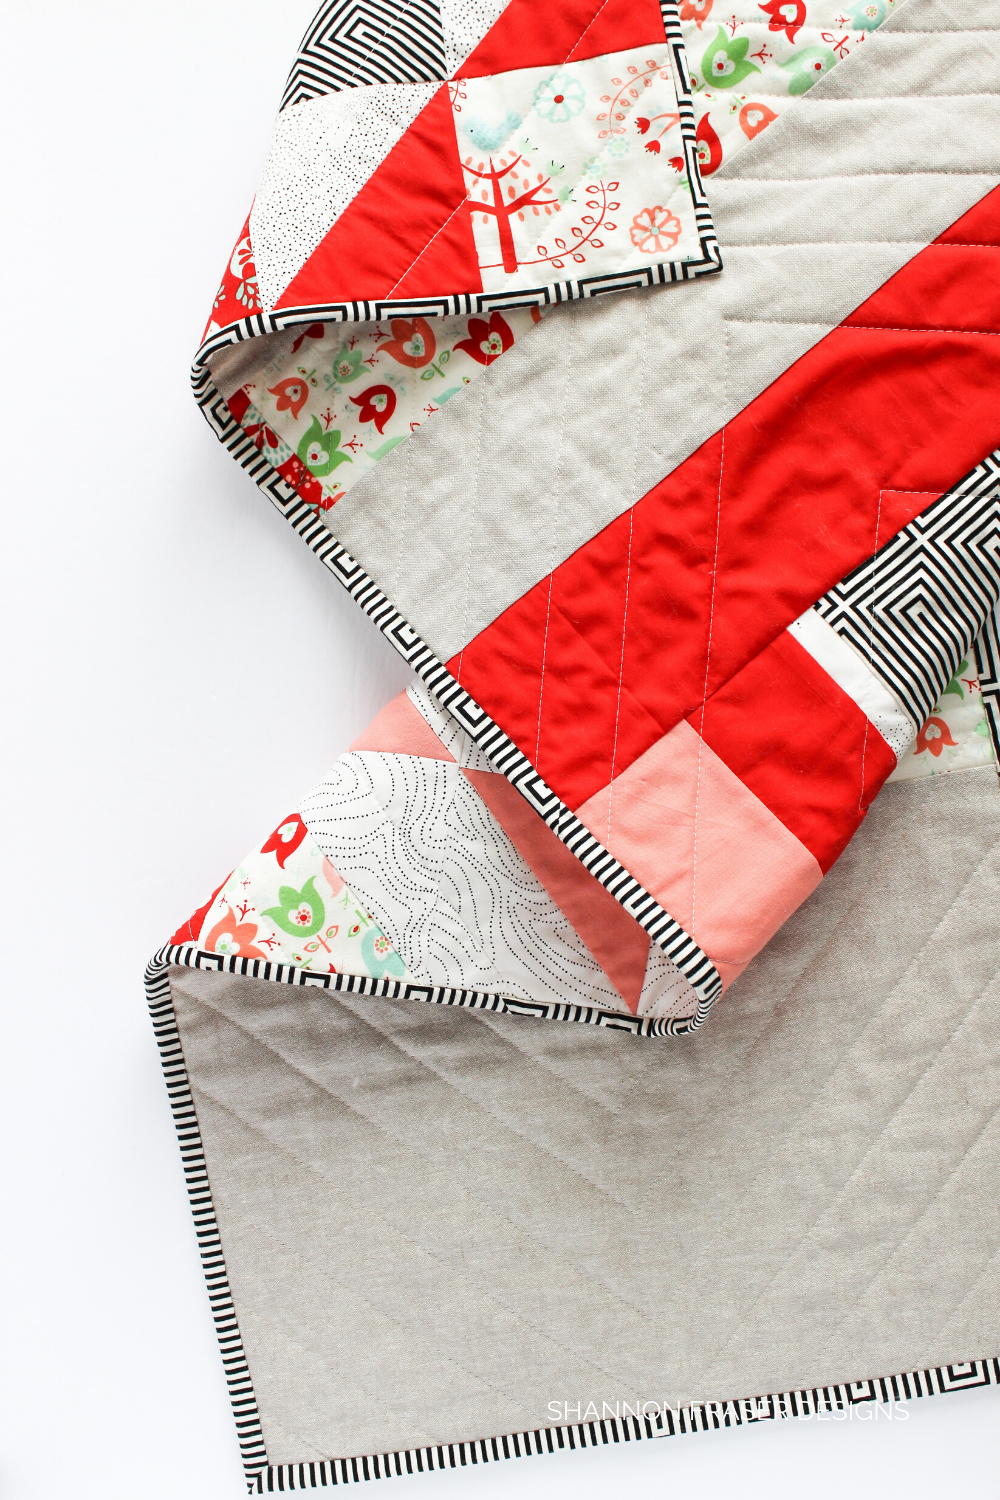 Holiday Modern Aztec quilted table runner folded on the table | Christmas quilting project | Shannon Fraser Designs #tablelinen